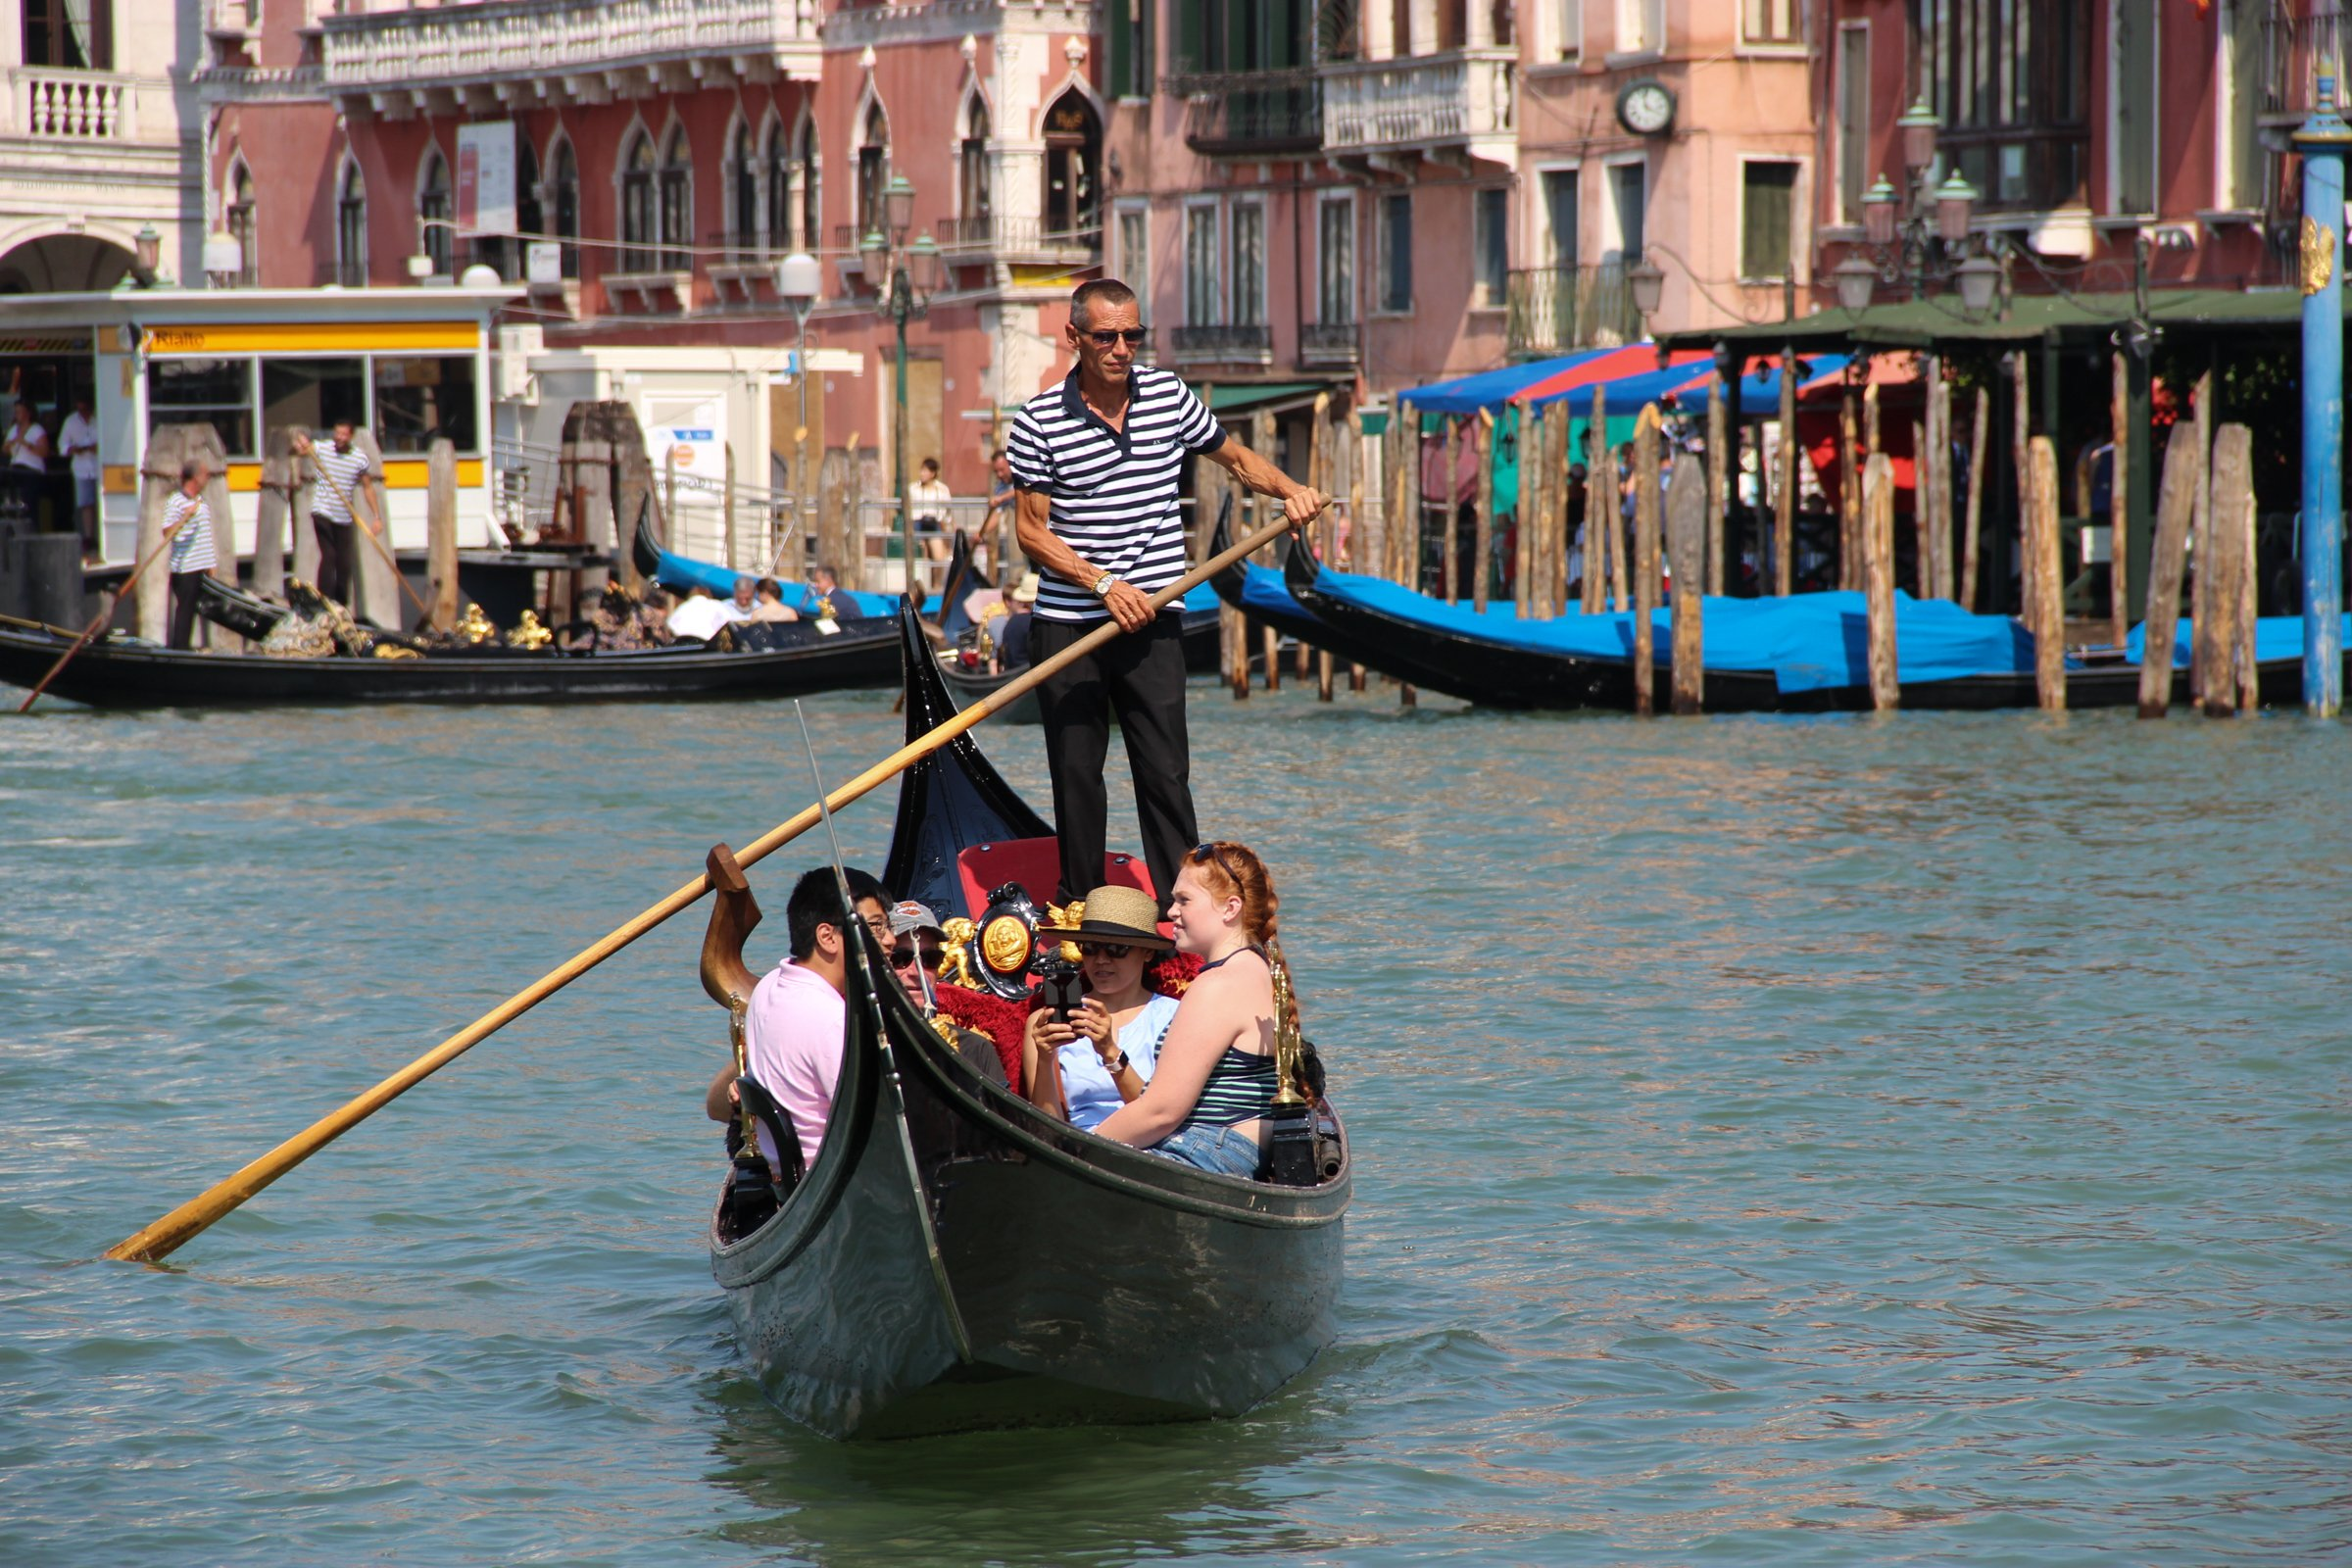 Man Rowing with Tourists in Gondola